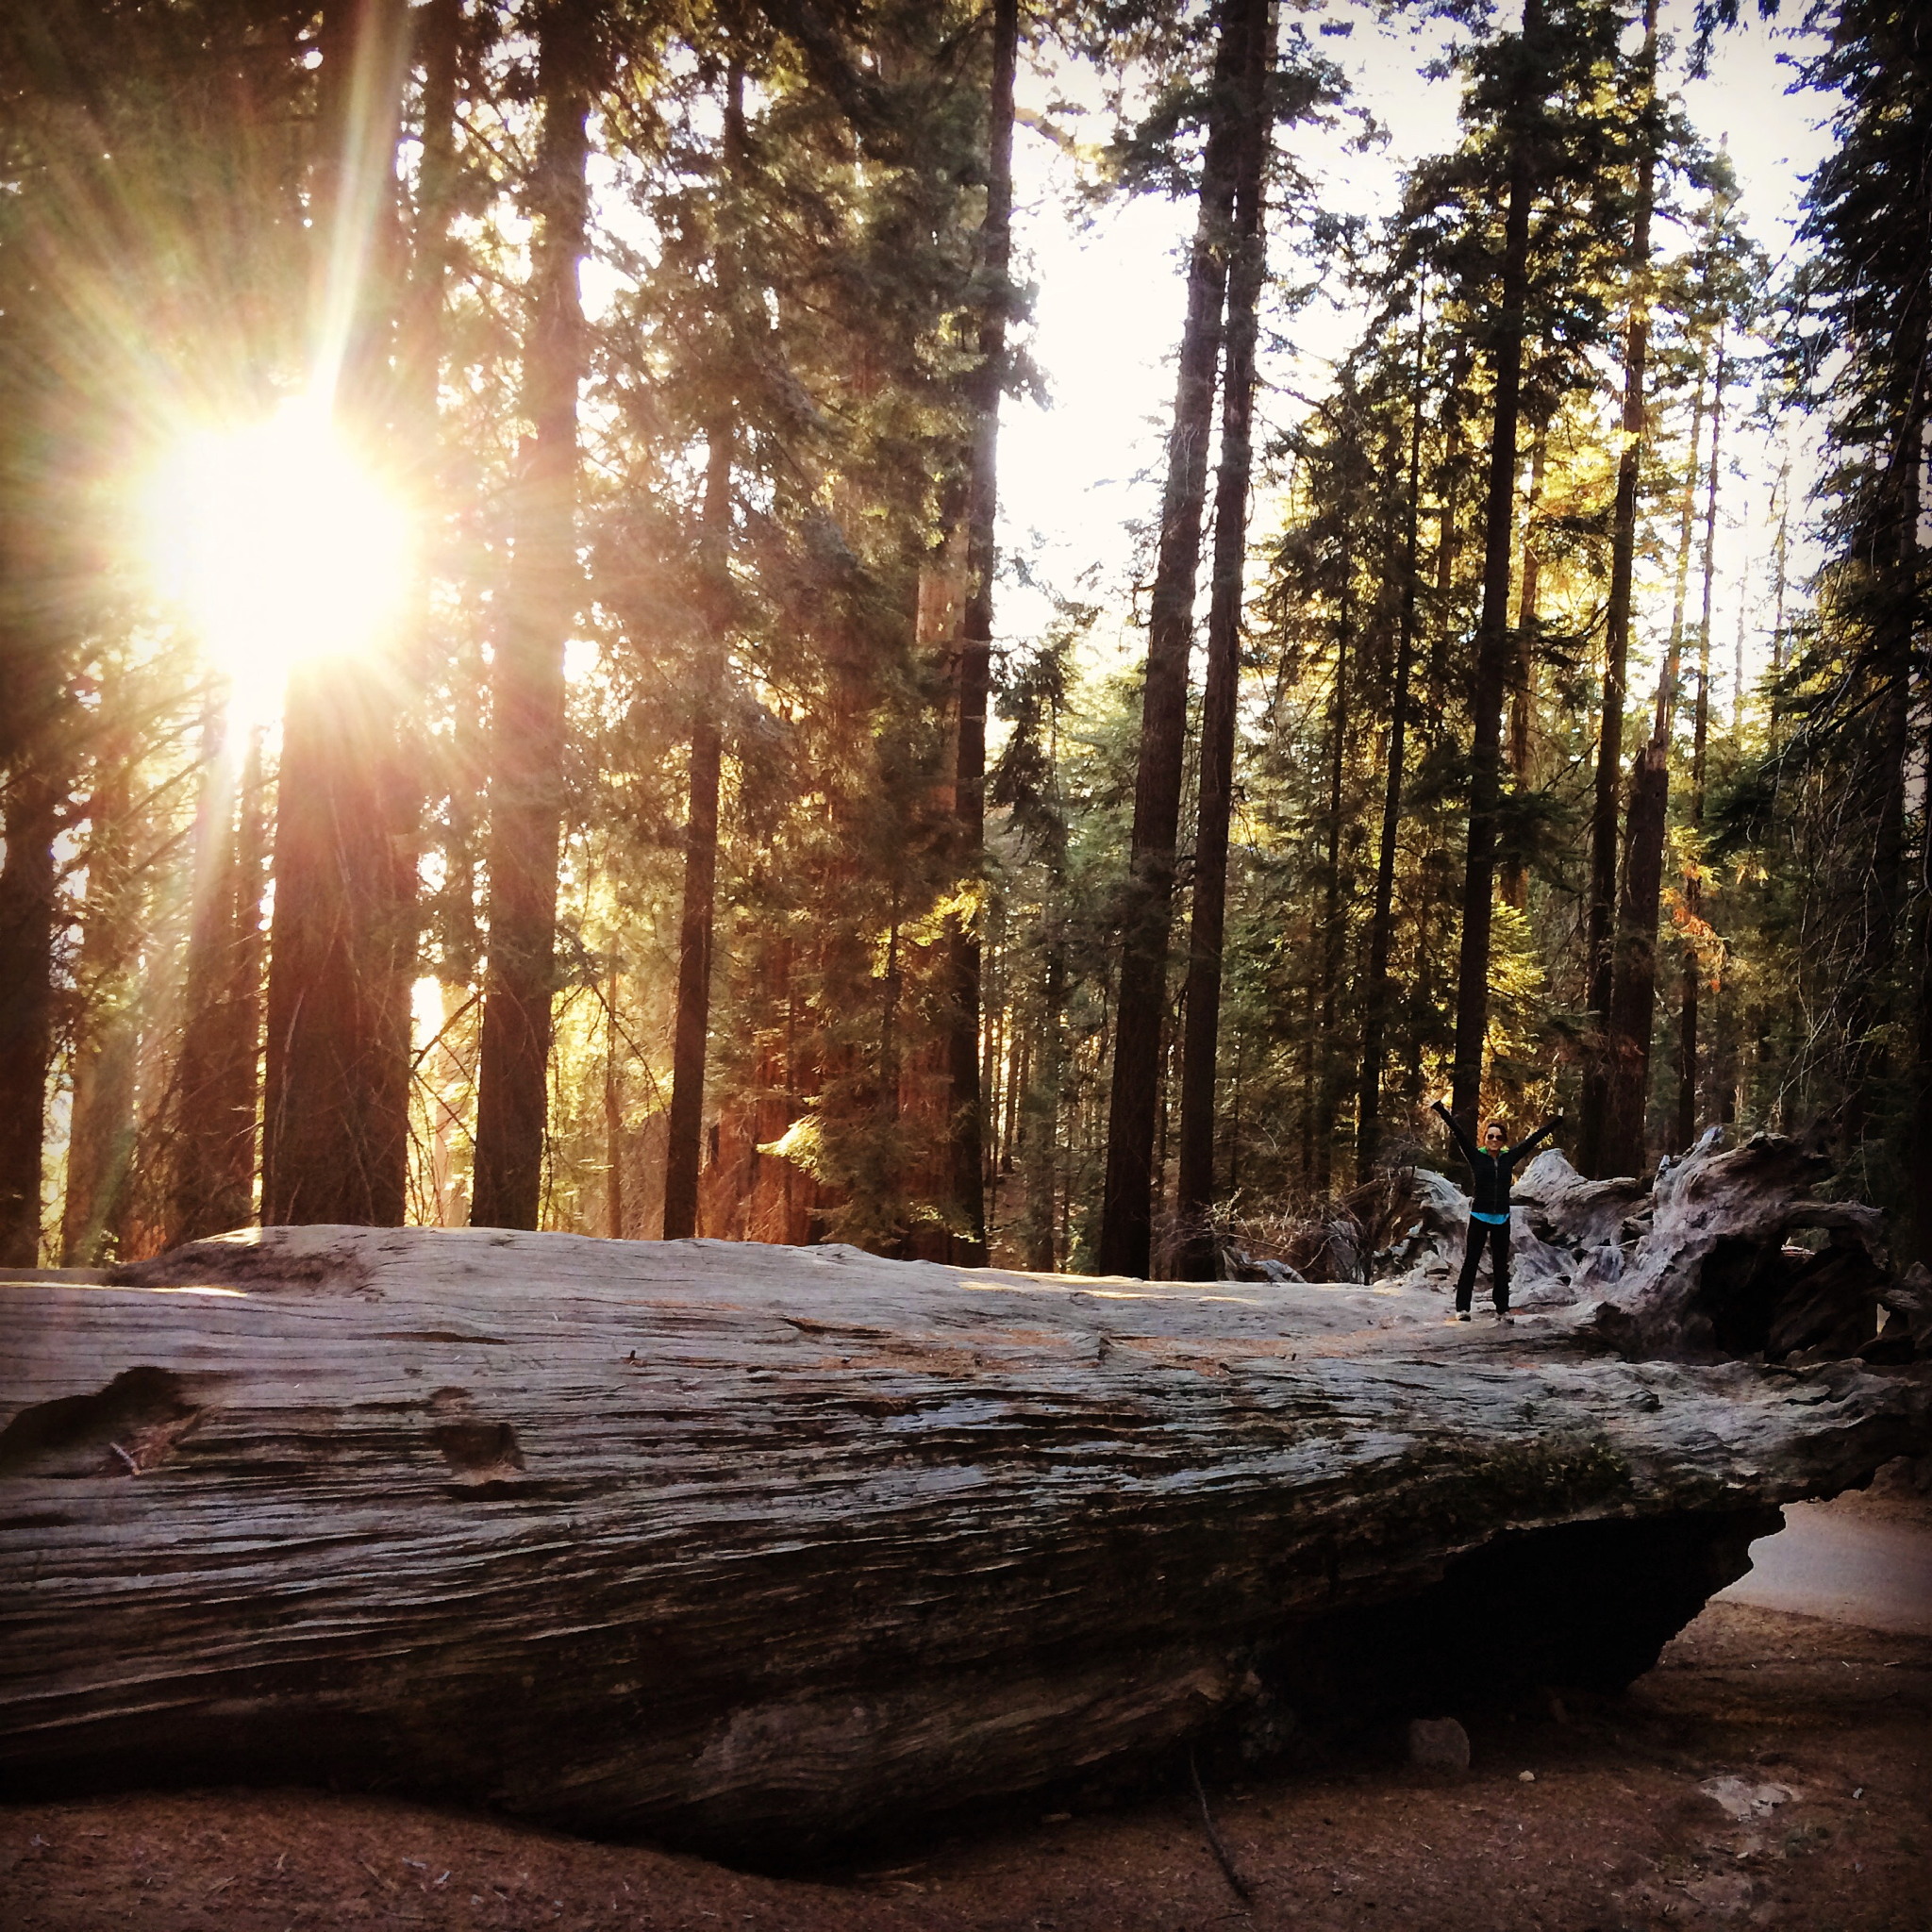 National-Parks-You-Must-See-Sequoia-National-Park-2.JPG